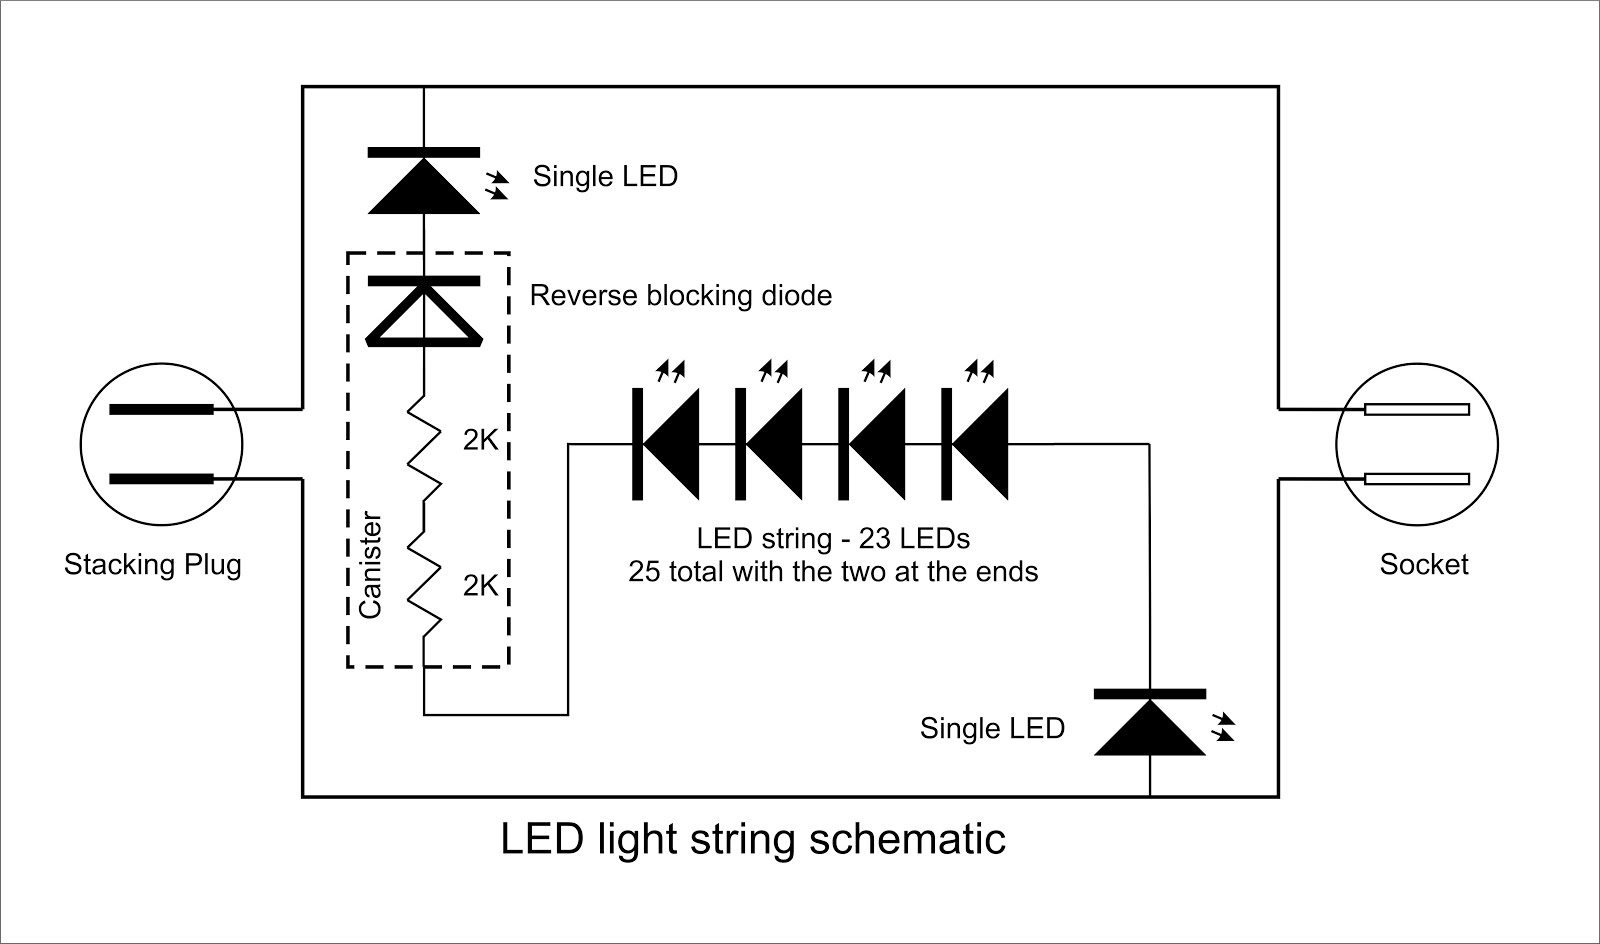 Led Christmas Lights Wiring Schematic | Manual E-Books - Led Christmas Lights Wiring Diagram